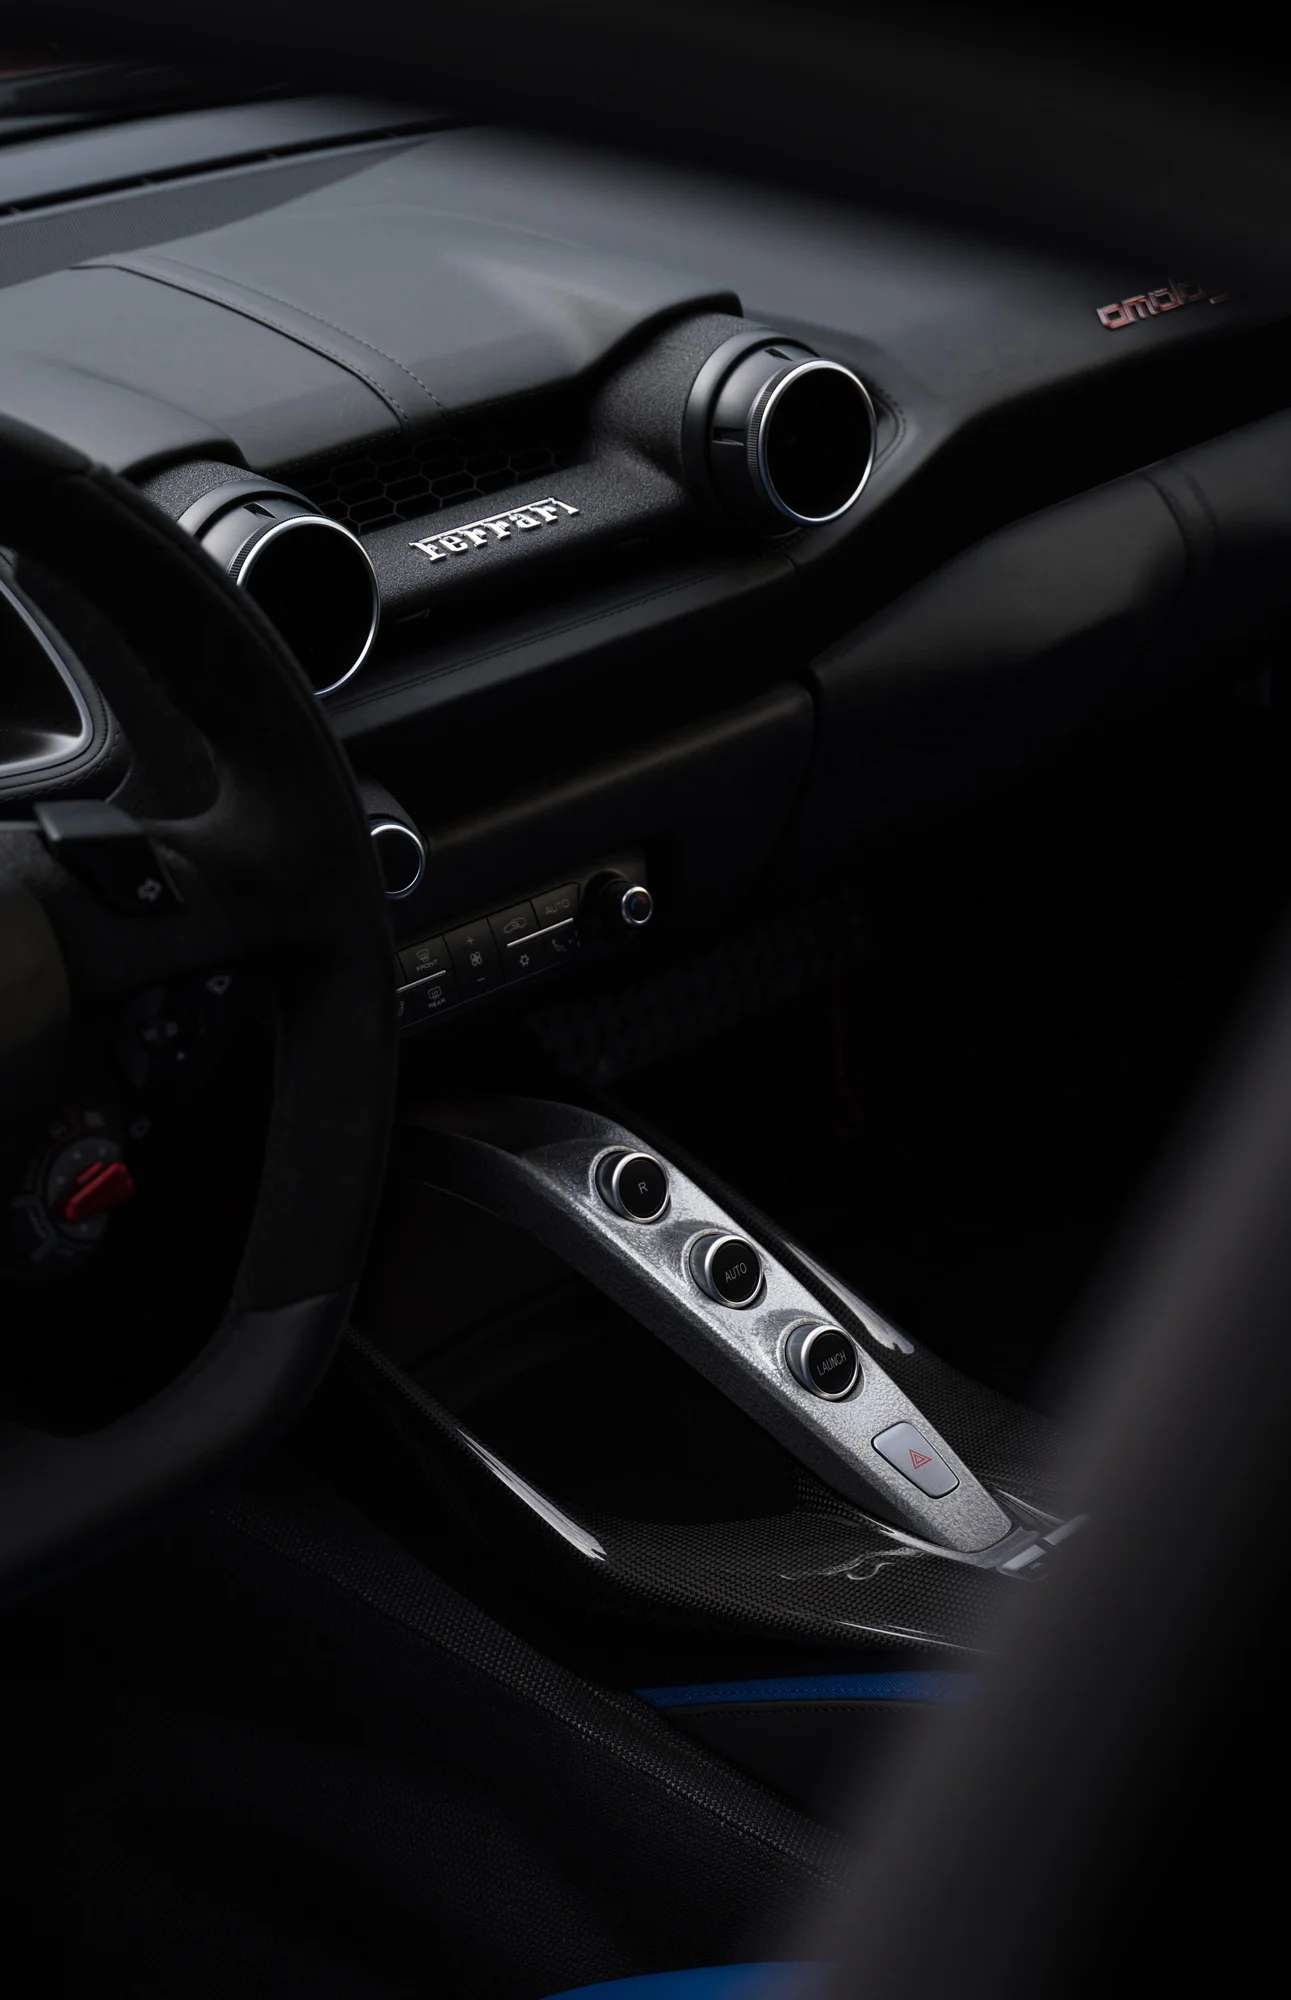 Ferrari 812 Superfast Interior : ferrari, superfast, interior, Stunning, Ferrari, Omologata, One-Off, Superfast, Drive